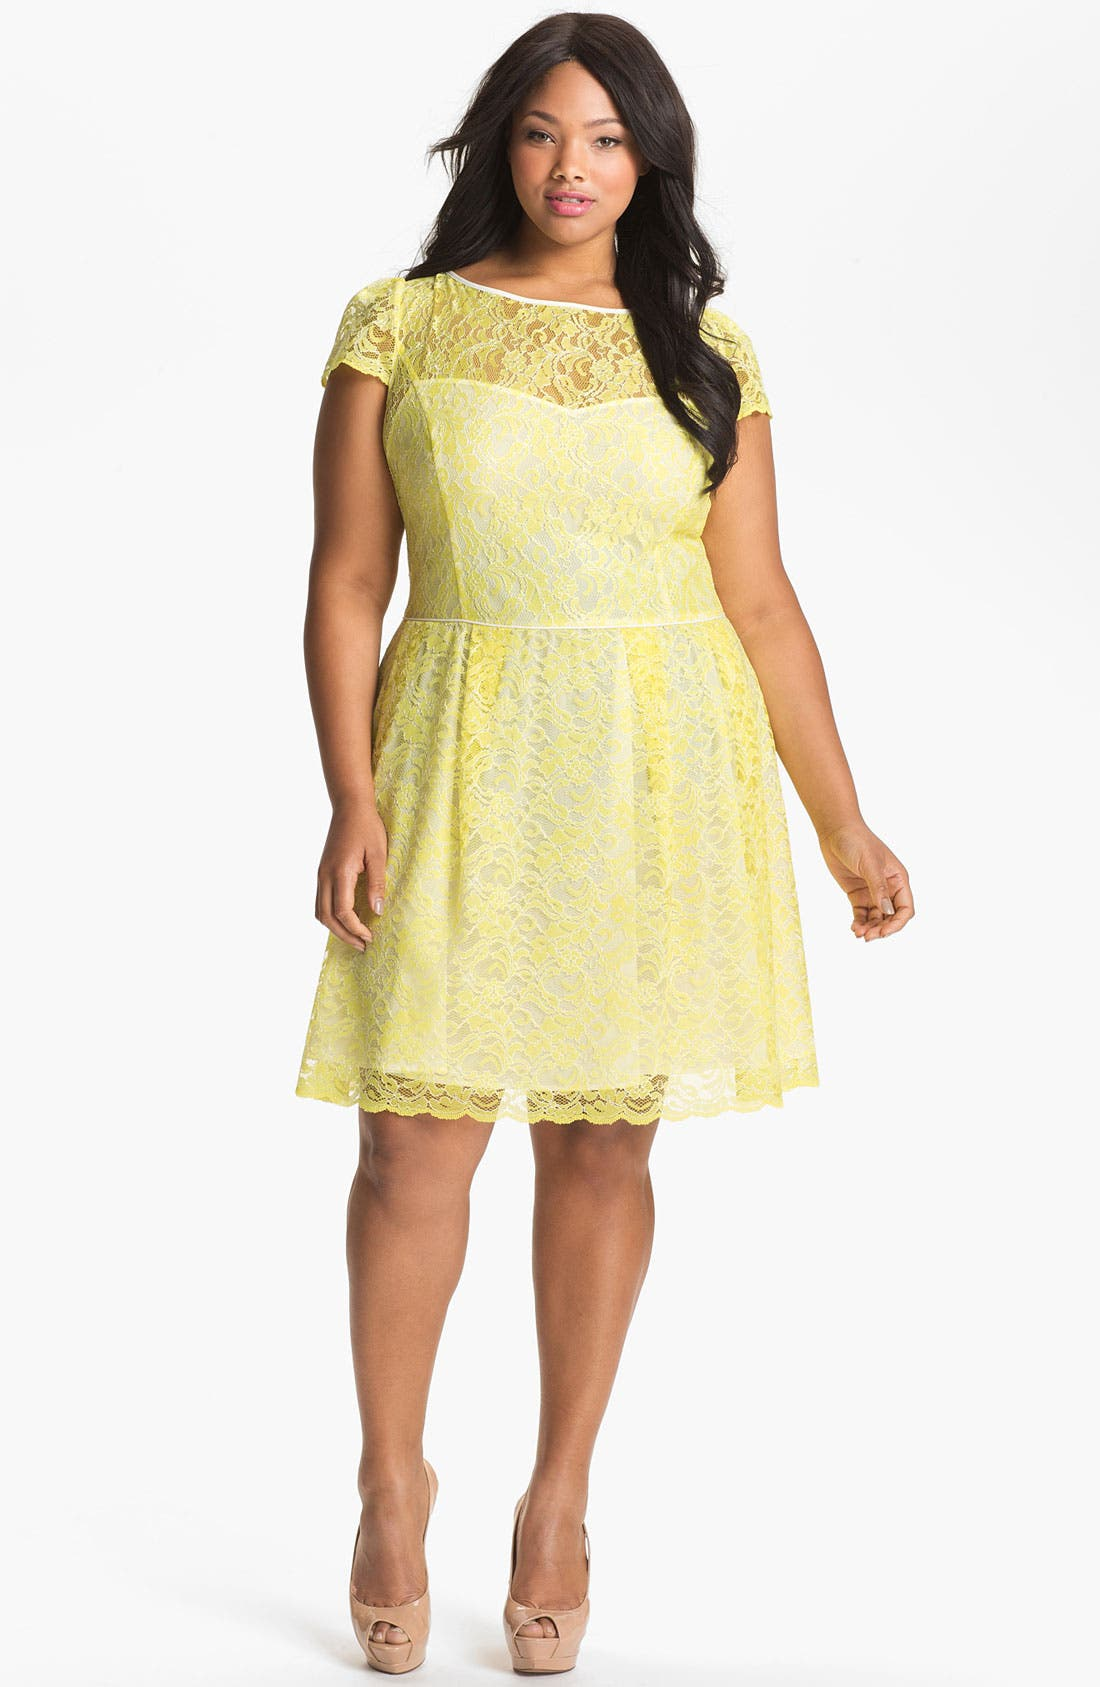 Alternate Image 1 Selected - A.B.S. by Allen Schwartz Lace Fit & Flare Dress (Plus Size) (Online Only)